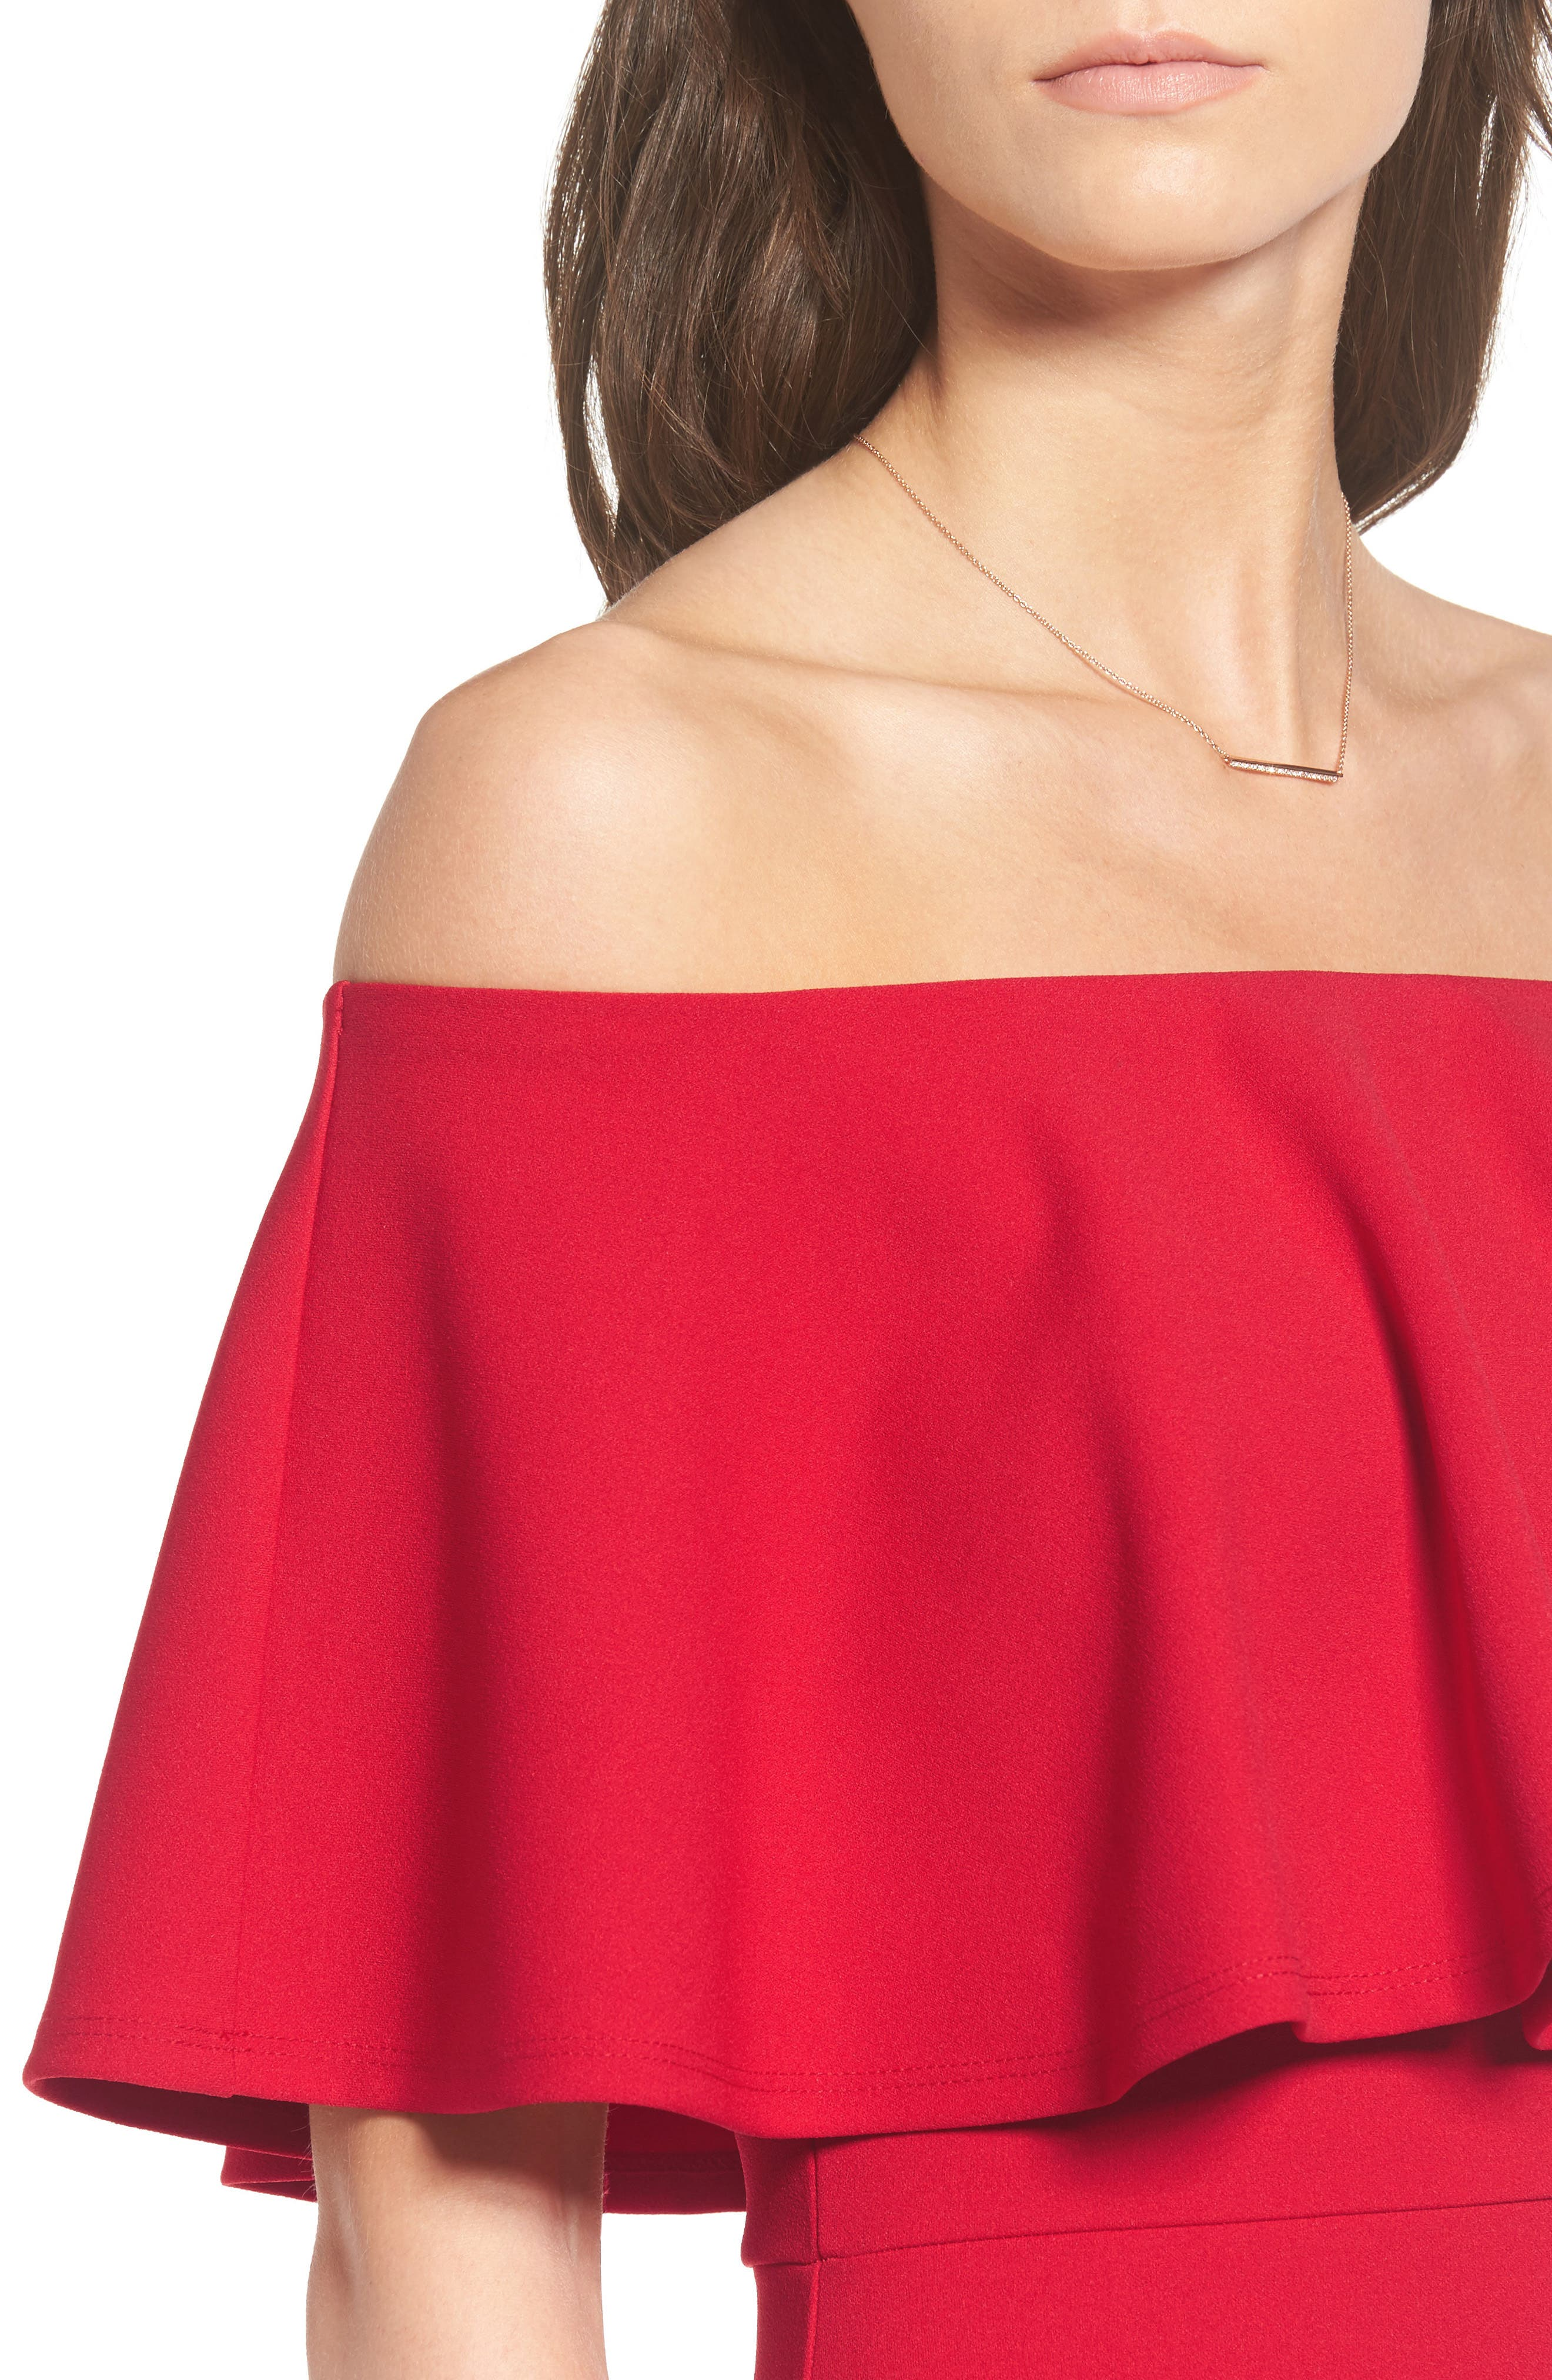 Ruffle Off the Shoulder Body-Con Dress,                             Alternate thumbnail 11, color,                             African Red